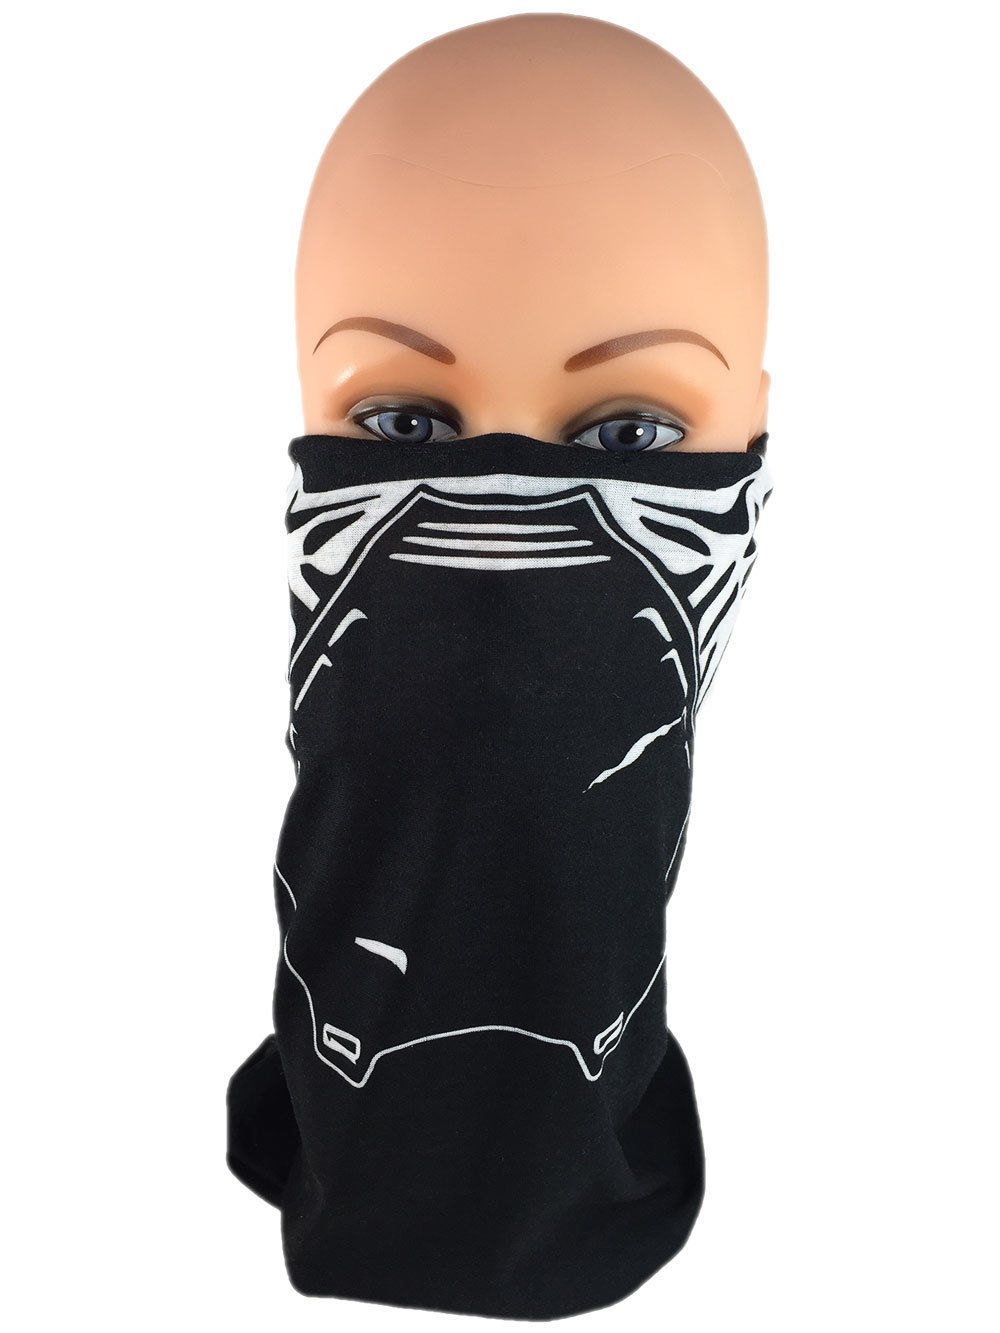 Kylo Red Star Wars Tube Face Mask, Balaclava, Neck Gaiter, Bandanna FREE SHIP